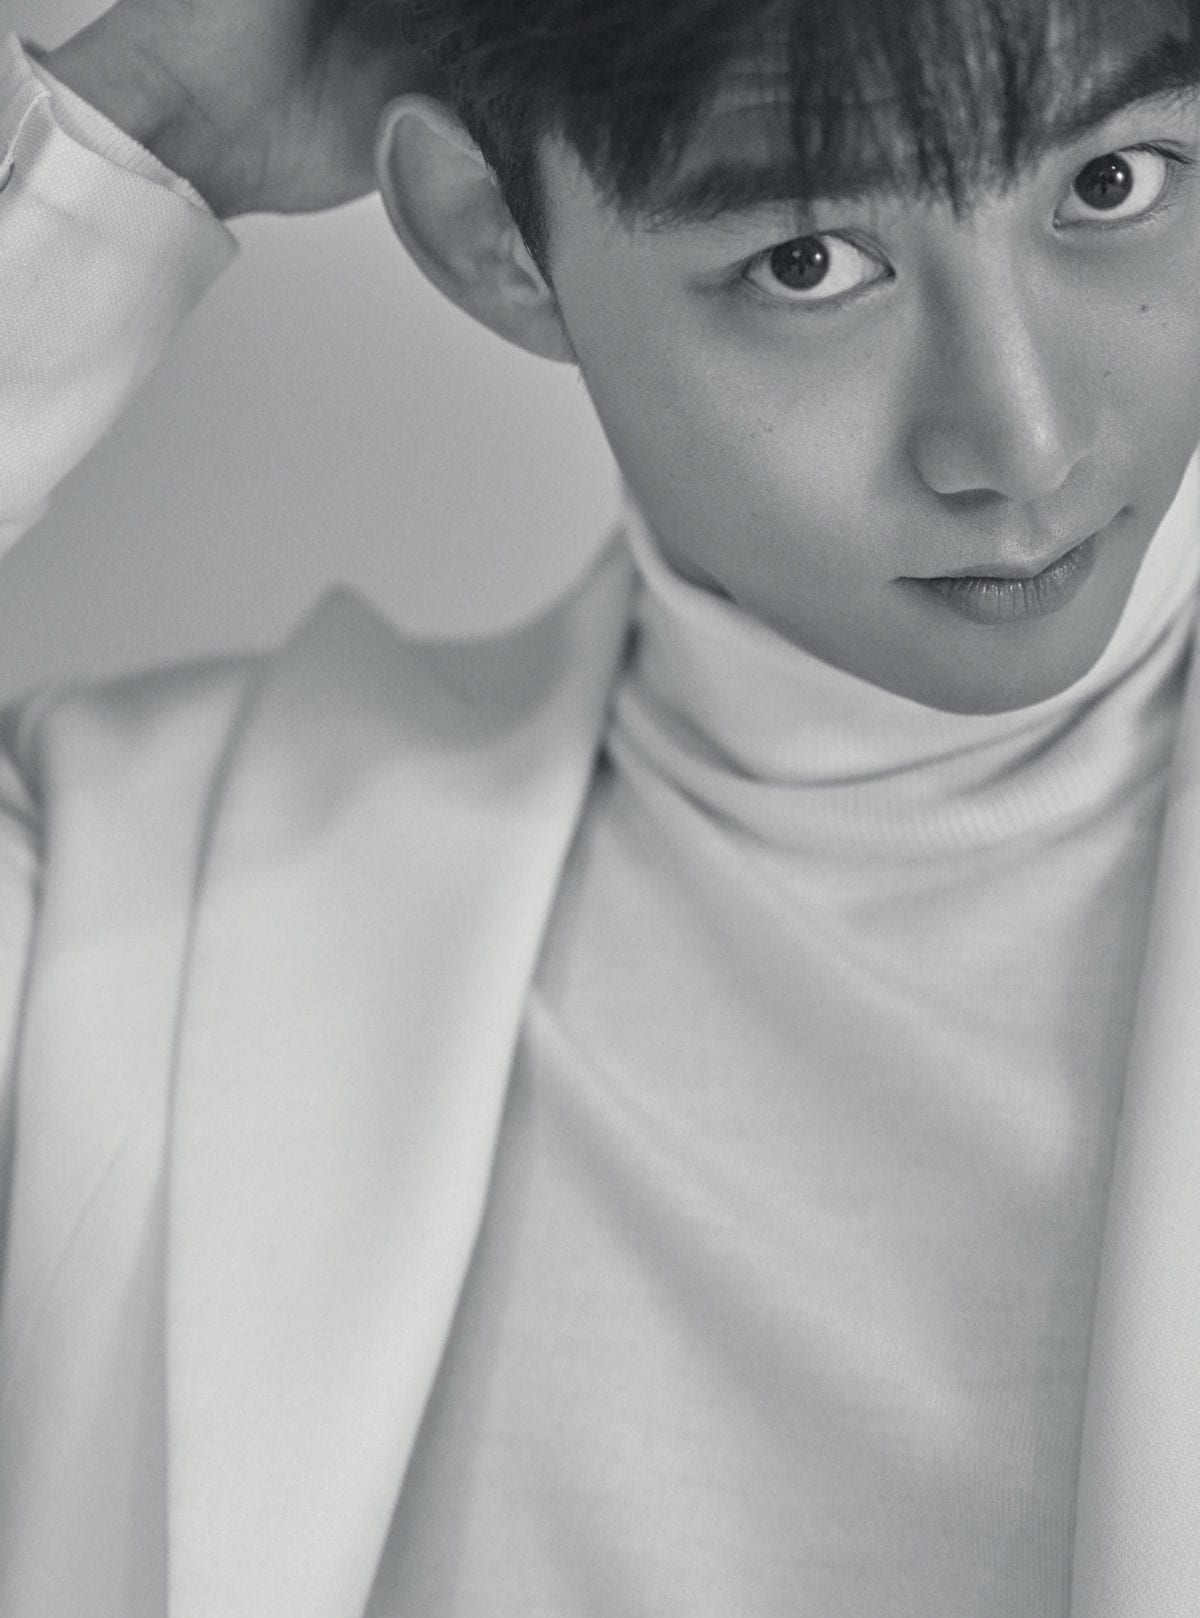 2pm S Taecyeon Talks About His Upcoming Drama 2pm S Future And More Soompi